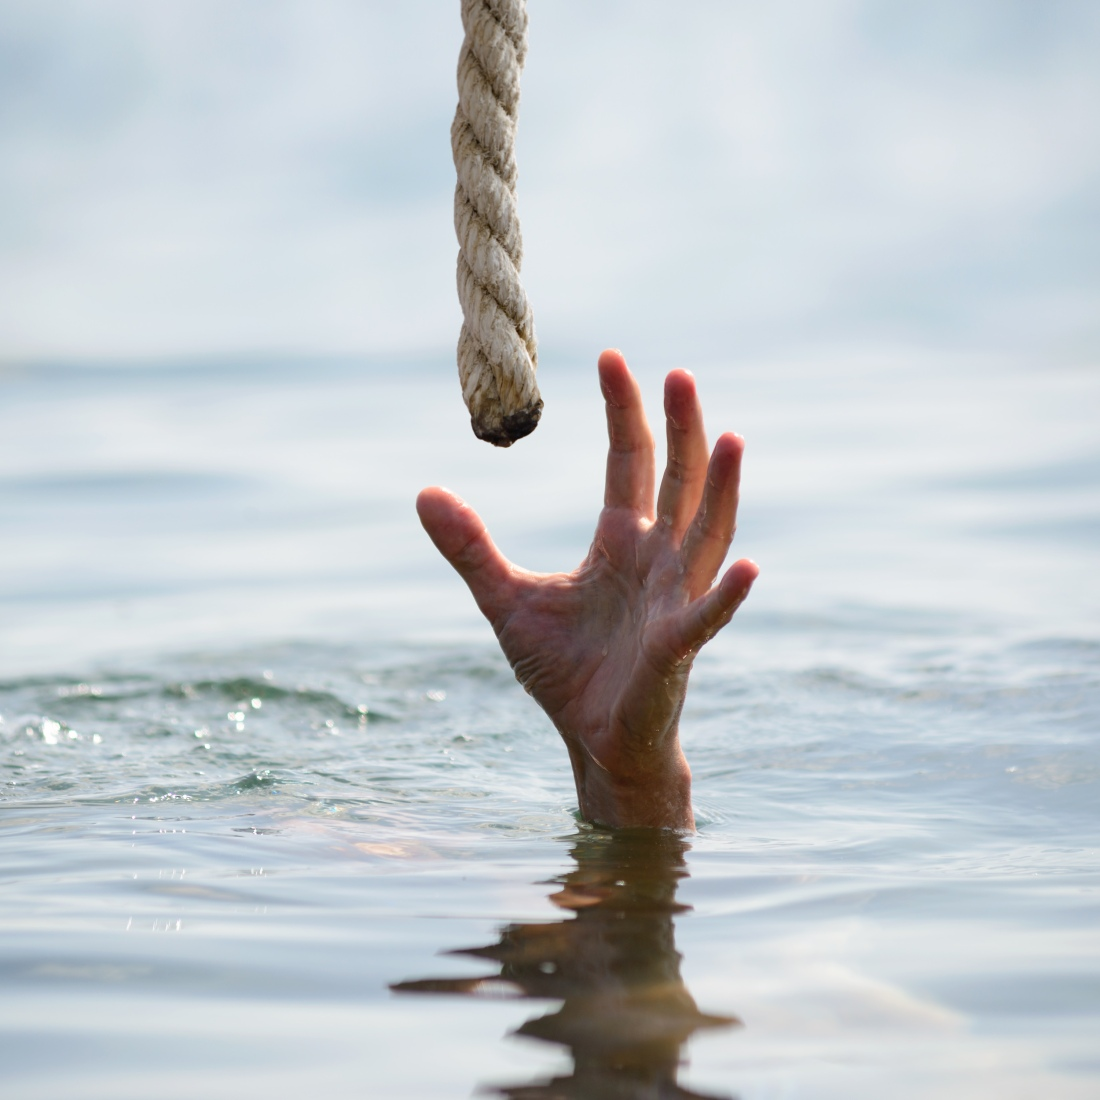 DROWNING ROPE IMAGE